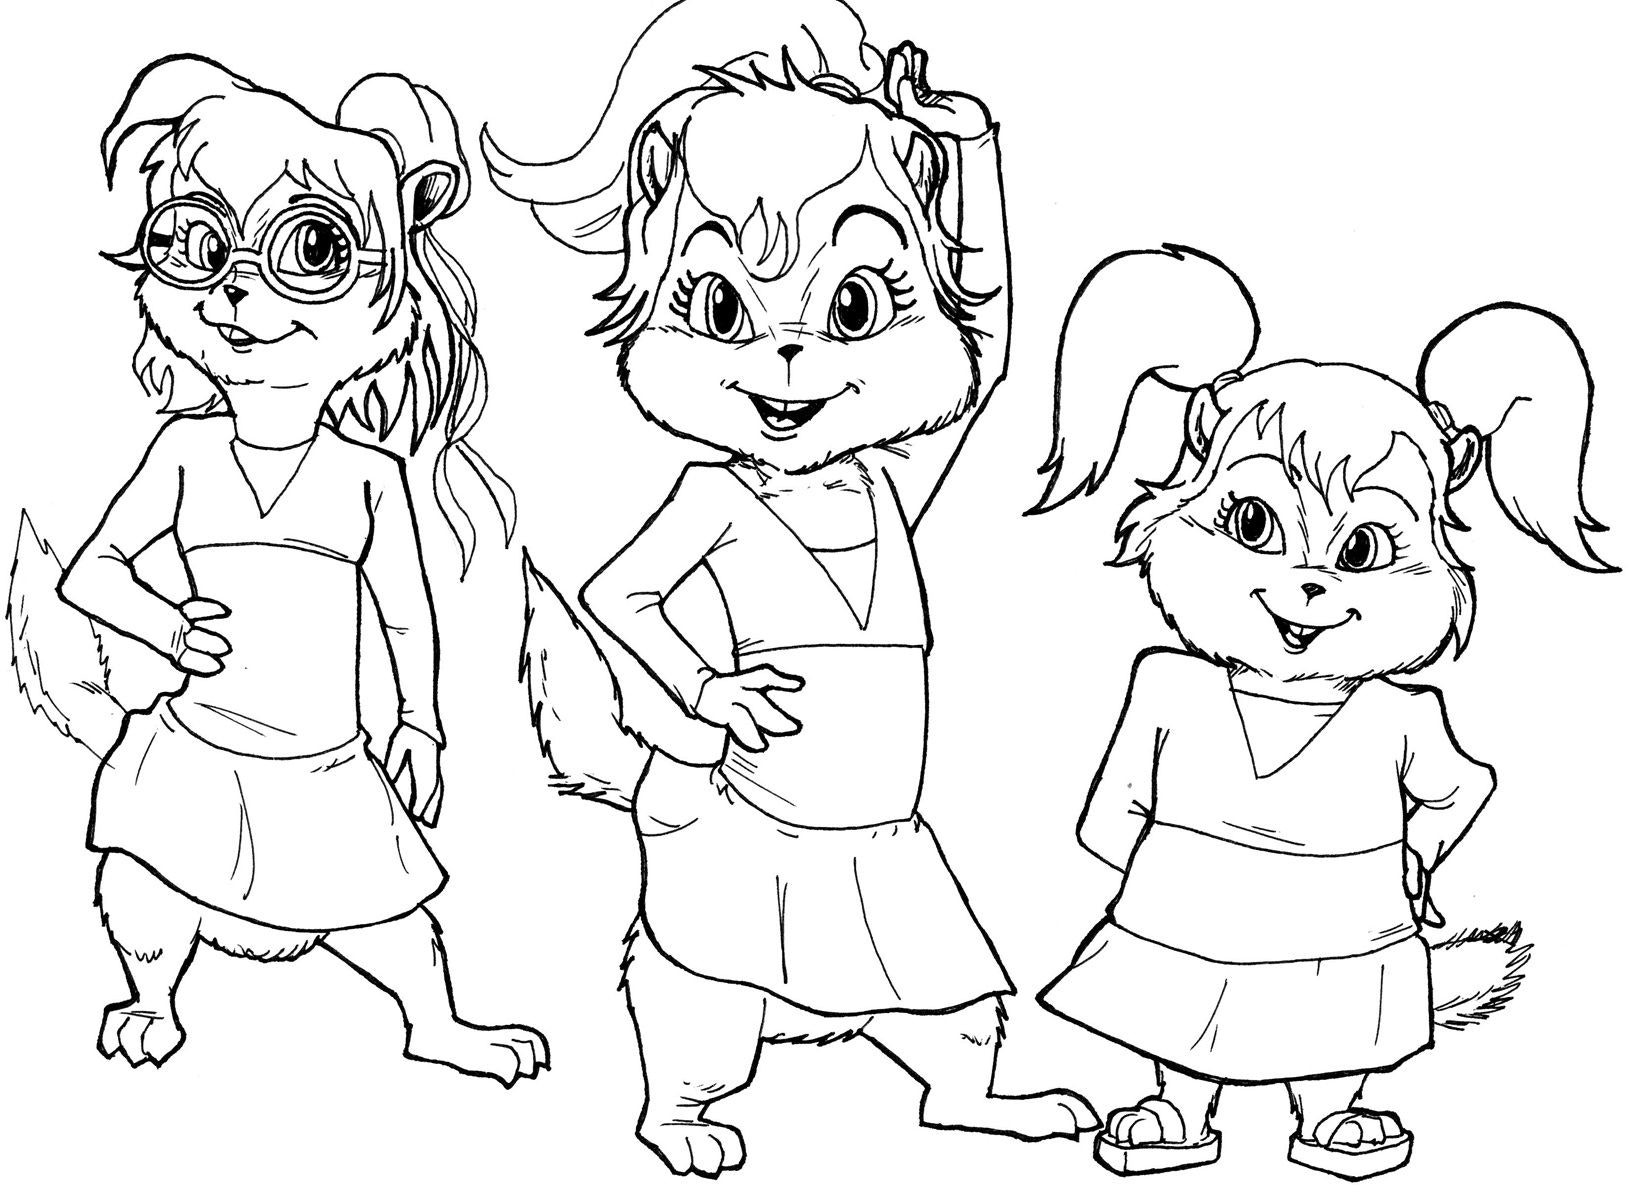 how to draw alvin and the chipmunks how to draw alvin and the chipmunksjpg photo by jane2u the and alvin to how chipmunks draw